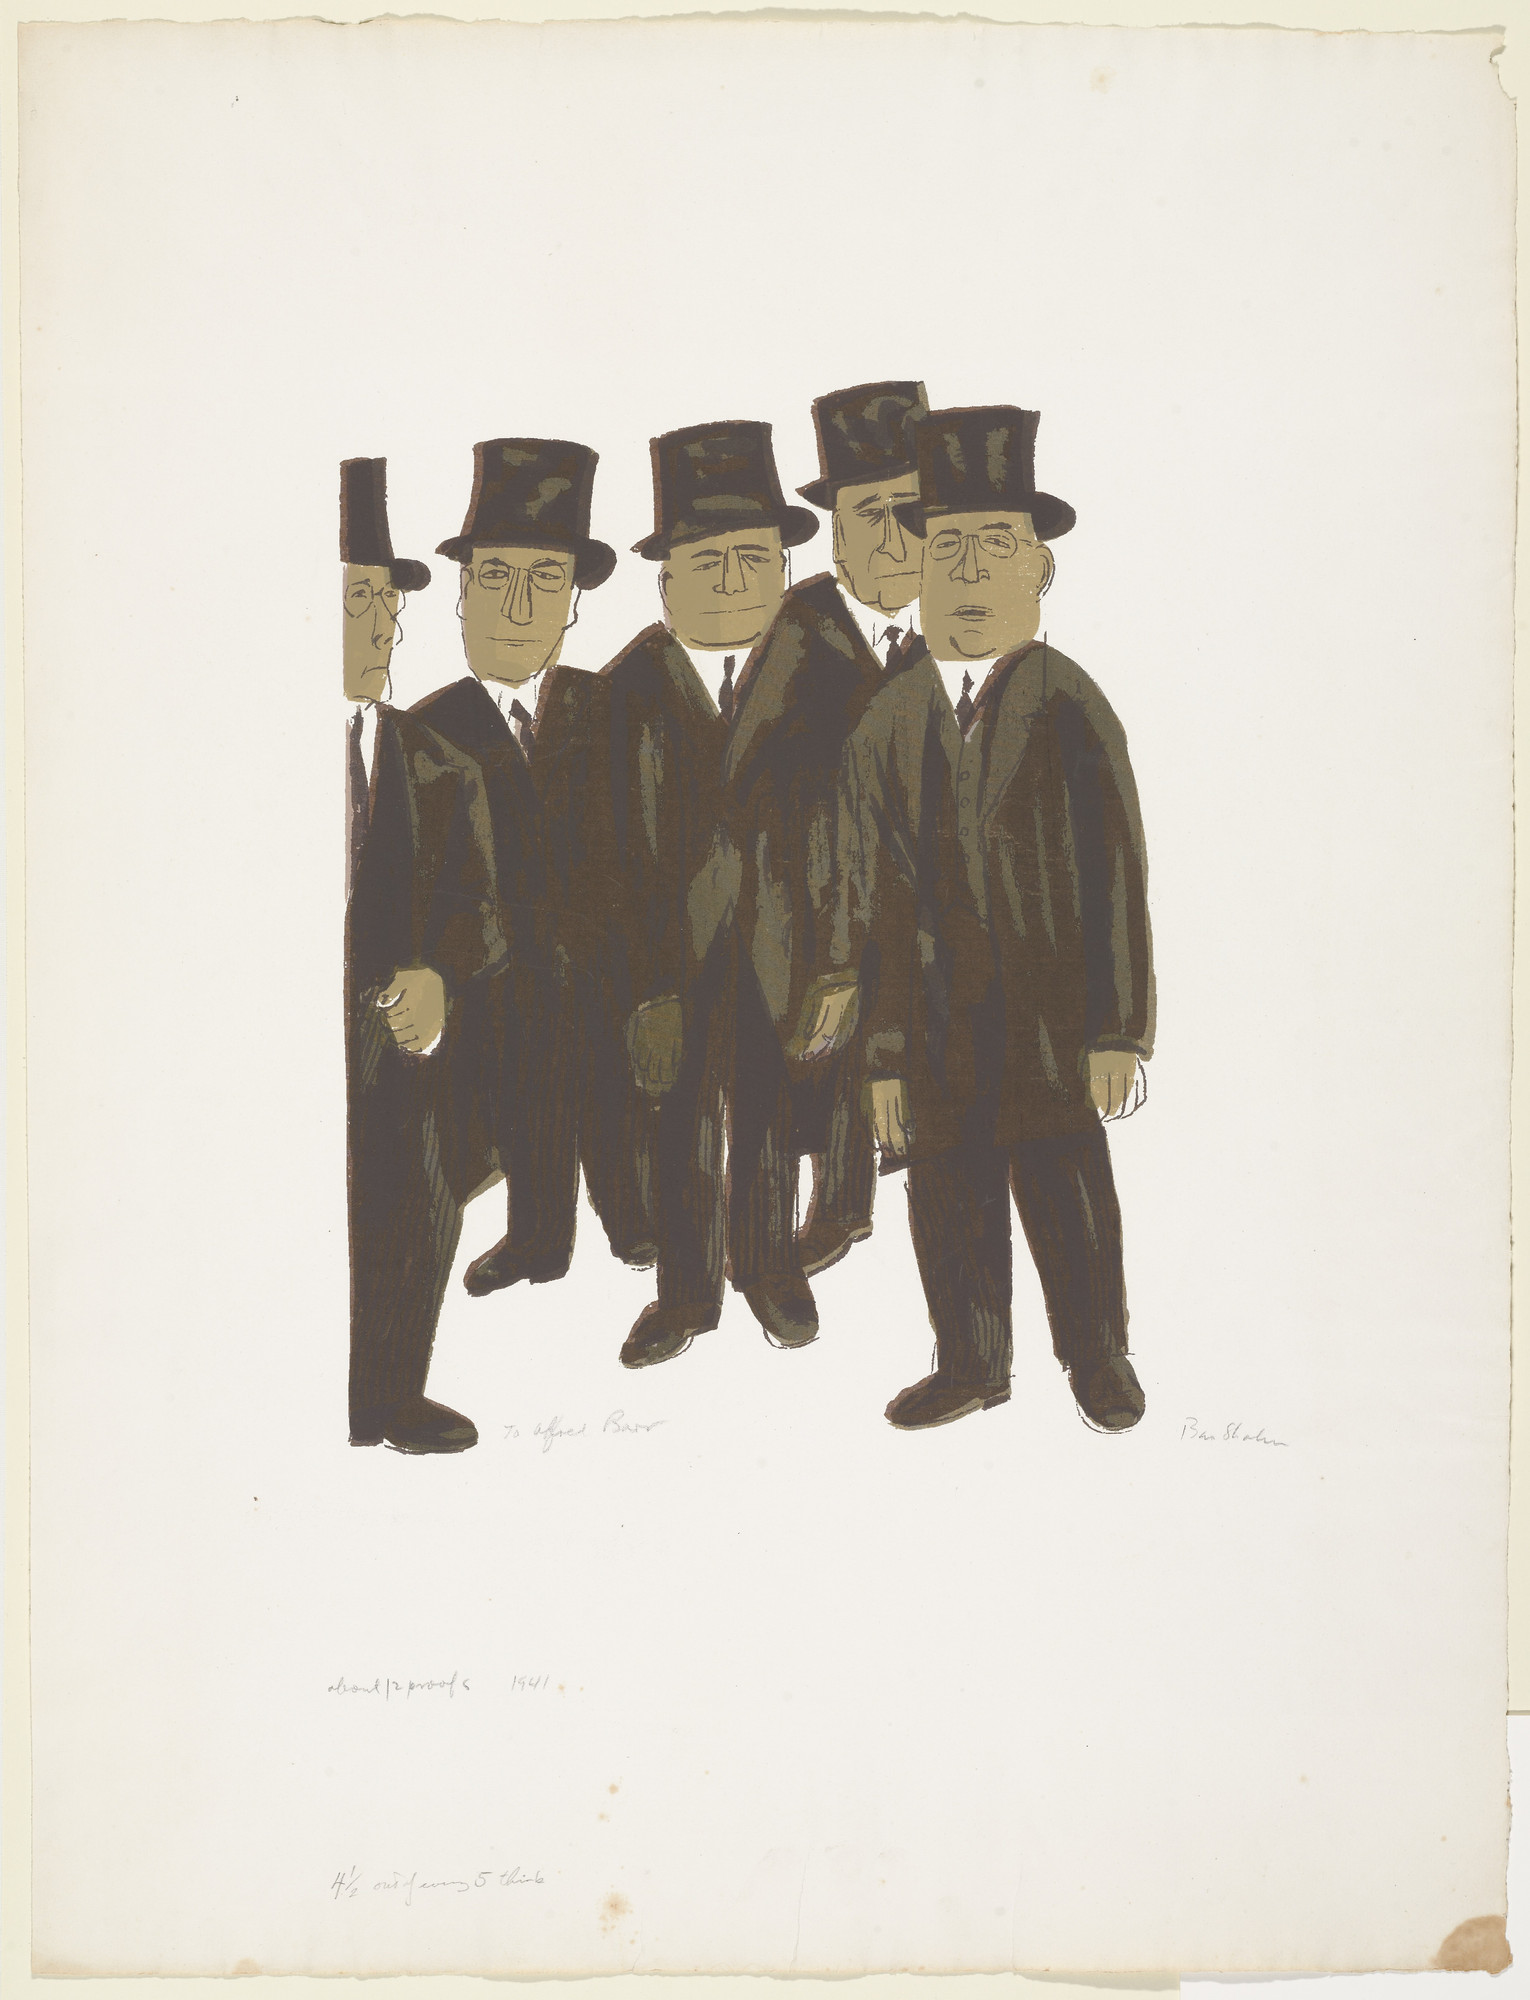 Ben Shahn. 4 1/2 Out of Every 5 Think. 1941